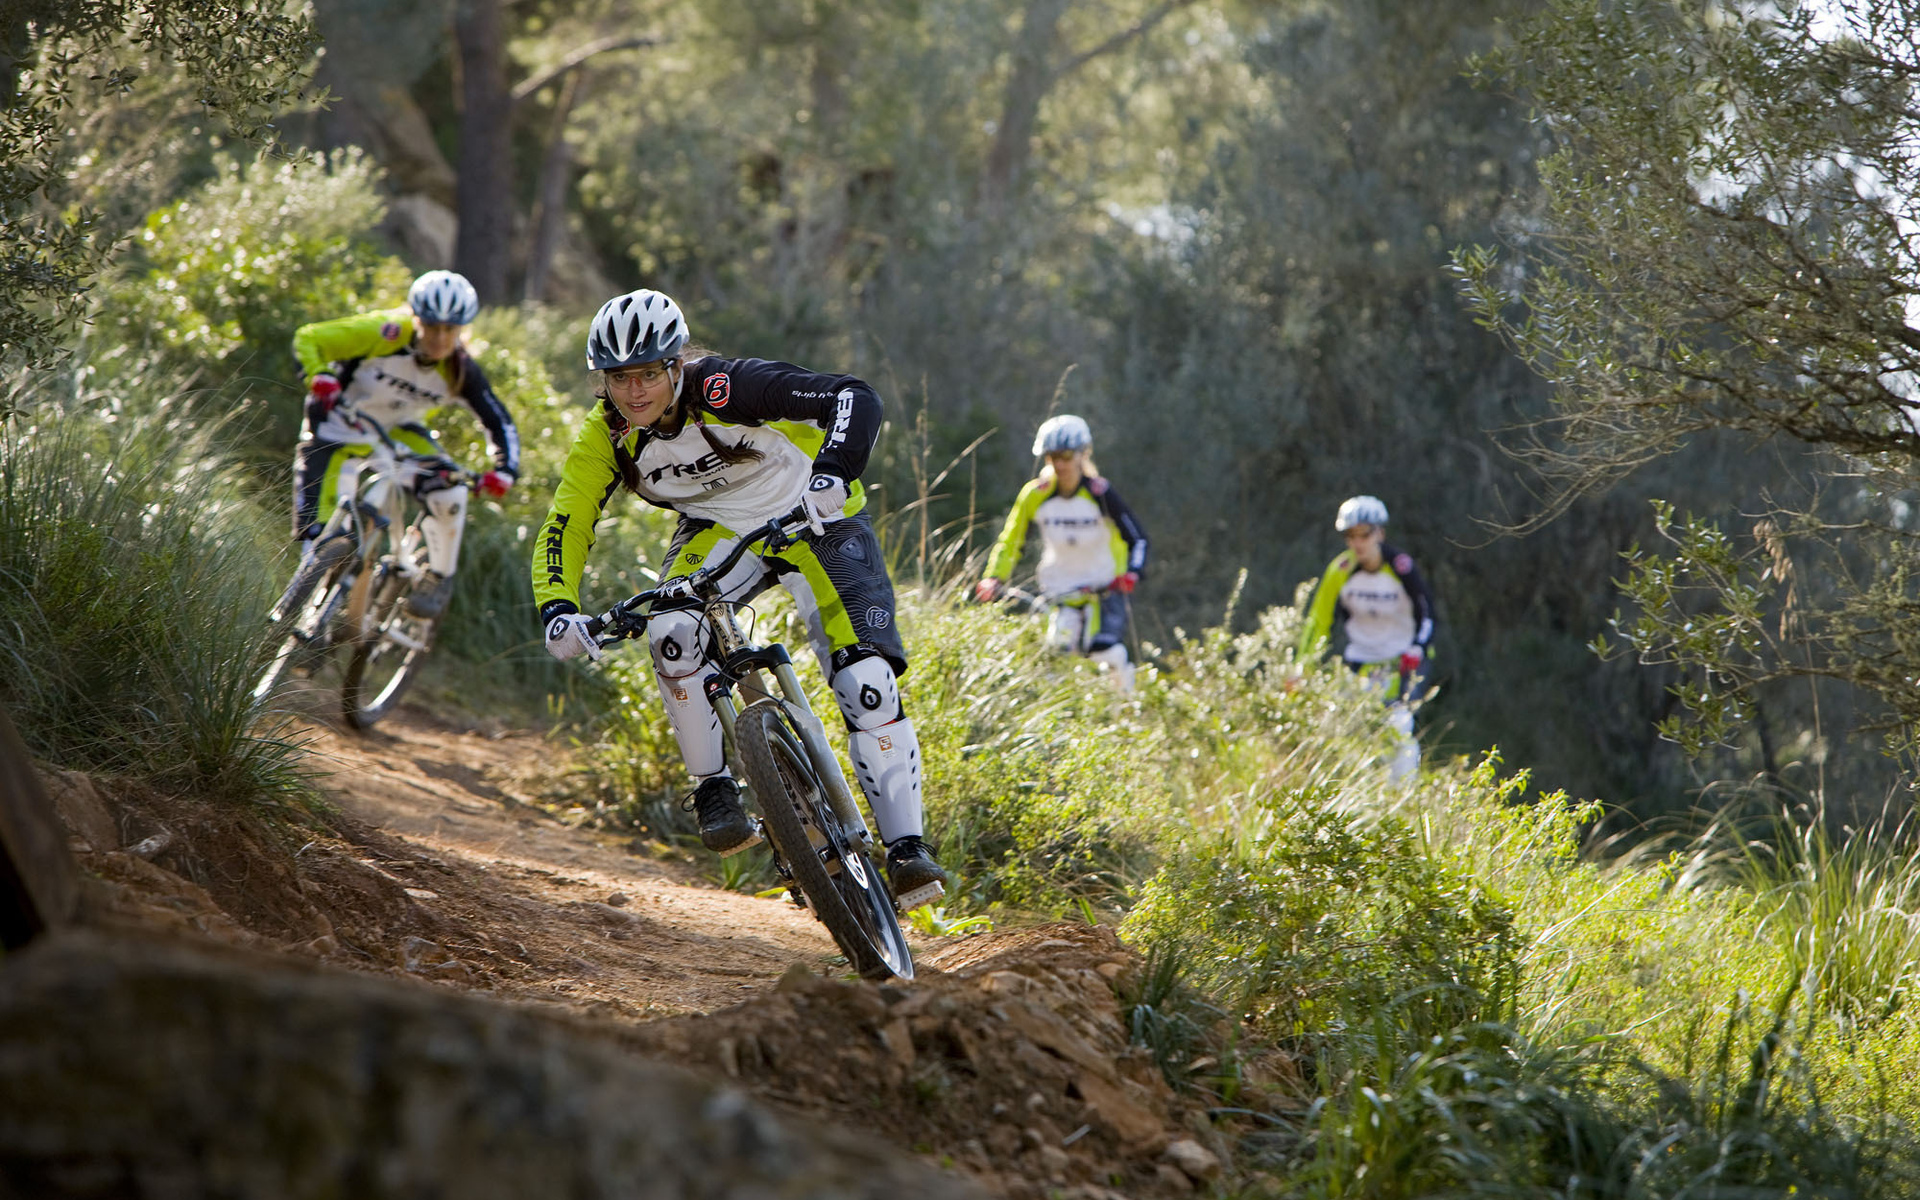 rocks, mountainbike, crazy, hill, downhill, freeride, dirt, bike, mtb, dh, mountain